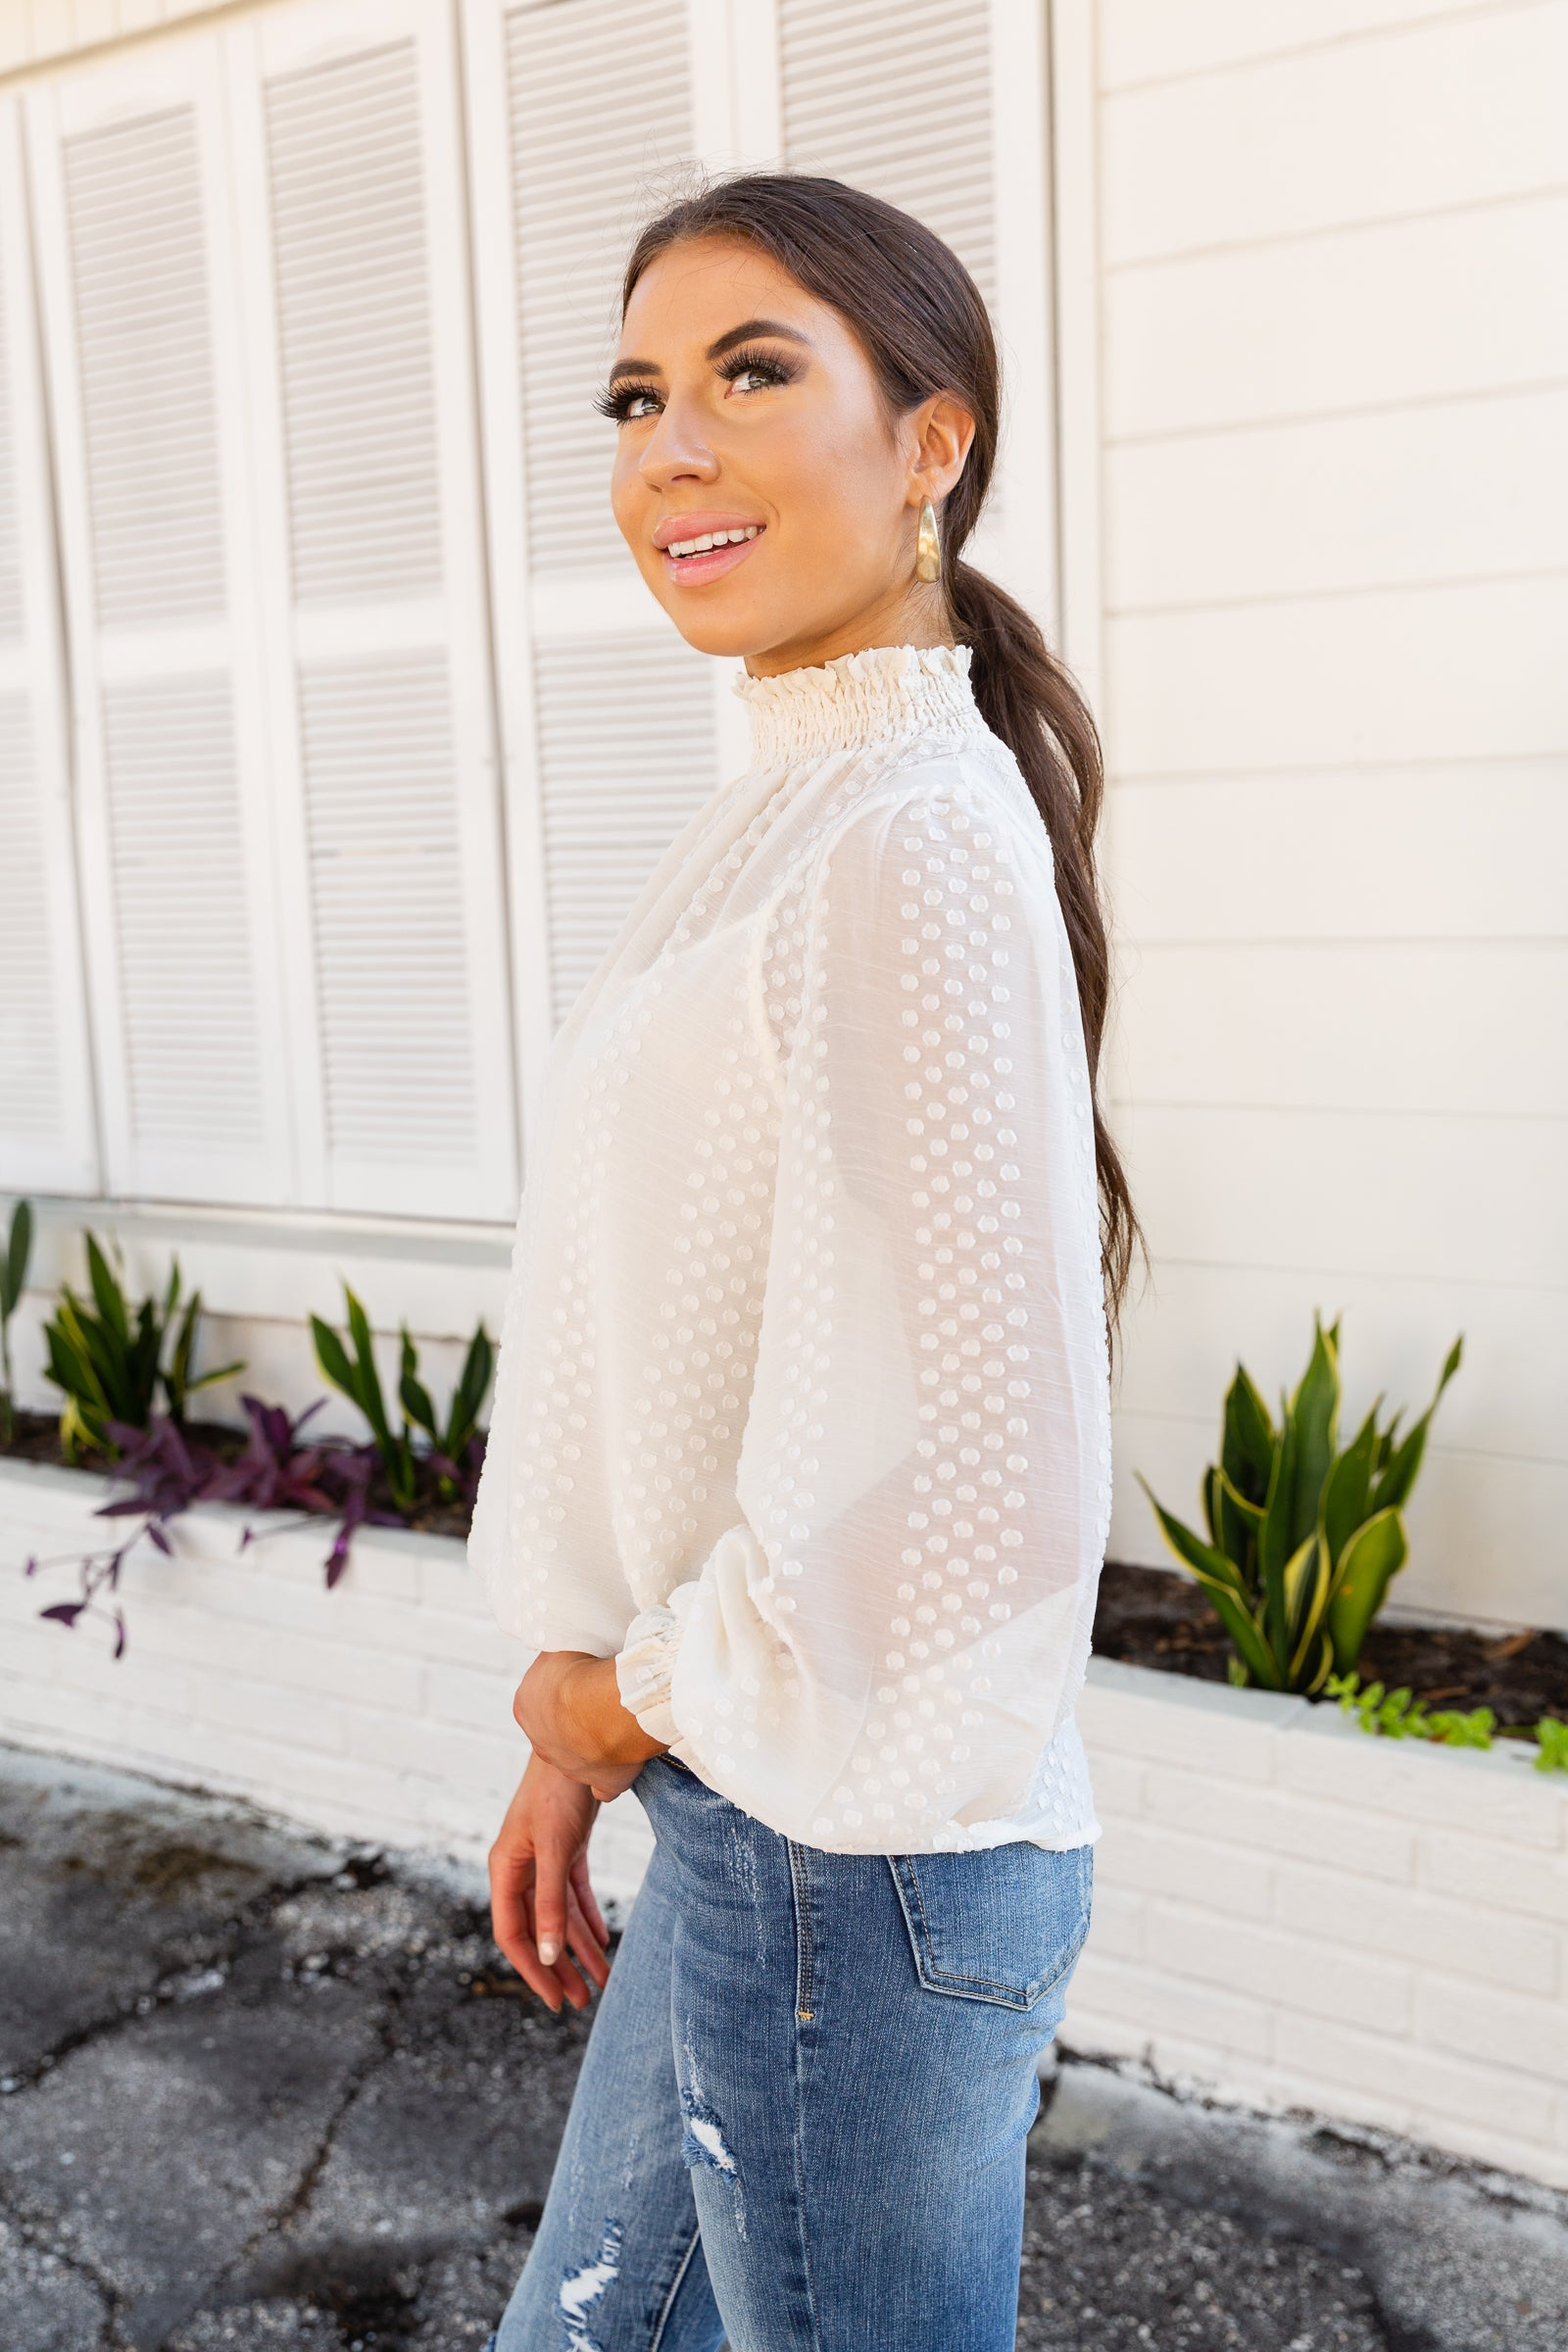 Long elastic ruffled sleeve top has swiss dots that cover the lightweight fabric. High smock banded neckline that leads to a comfortable and relaxed bodice silhouette.